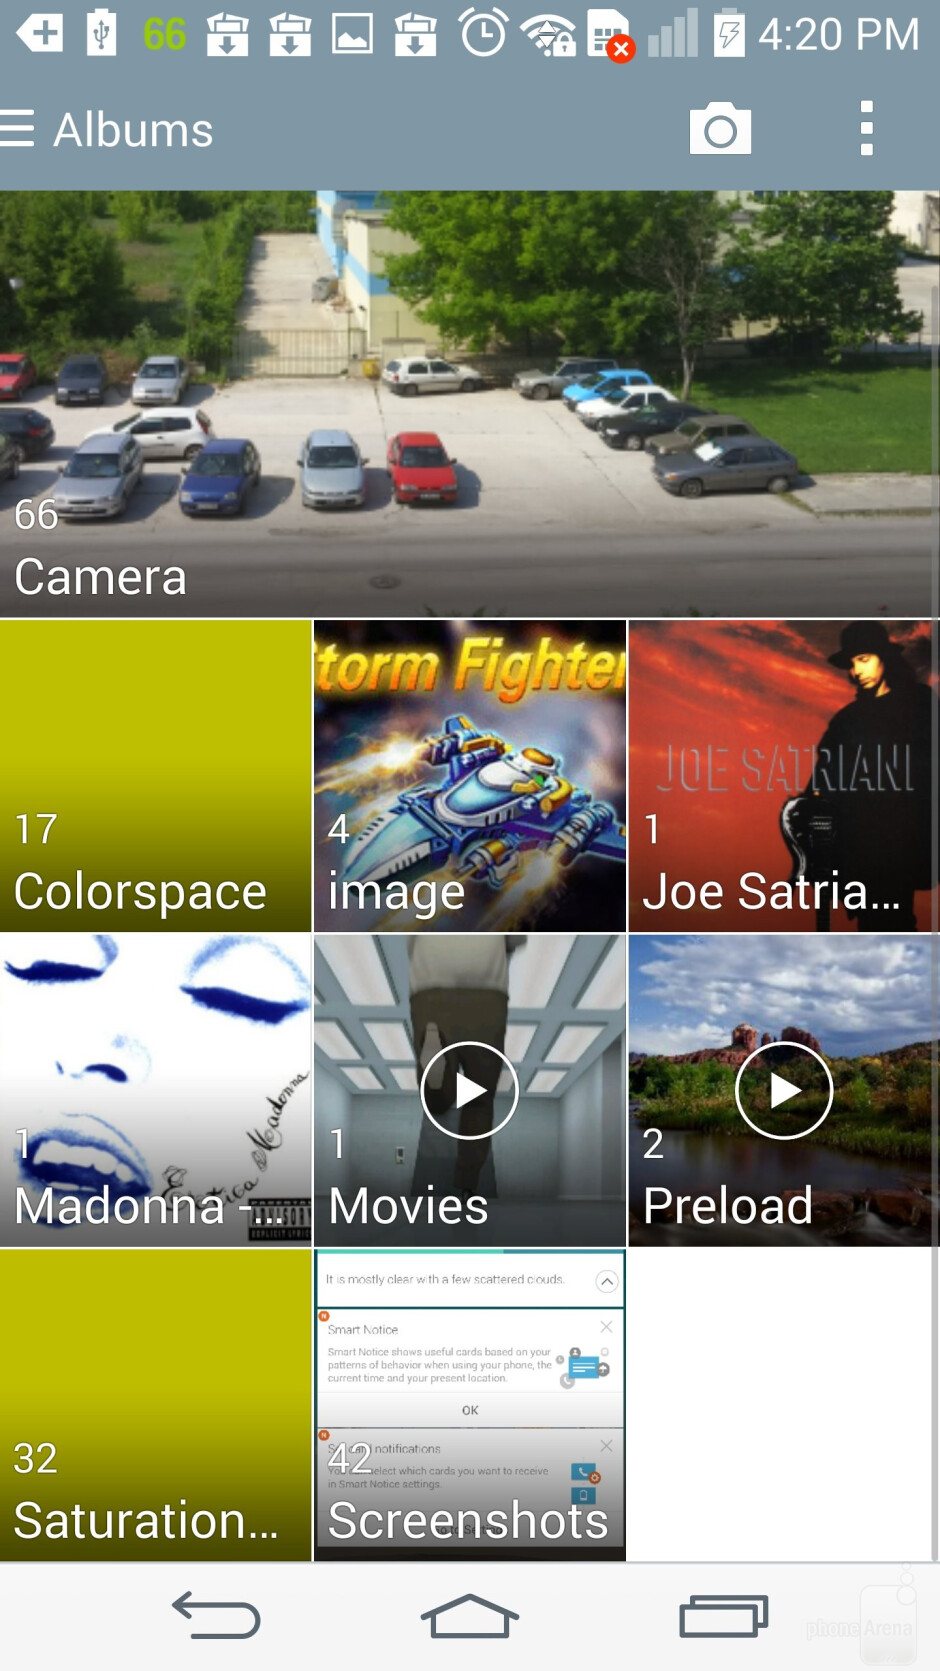 Gallery app - The multimedia experience on the LG G3 - LG G3 vs Samsung Galaxy S5